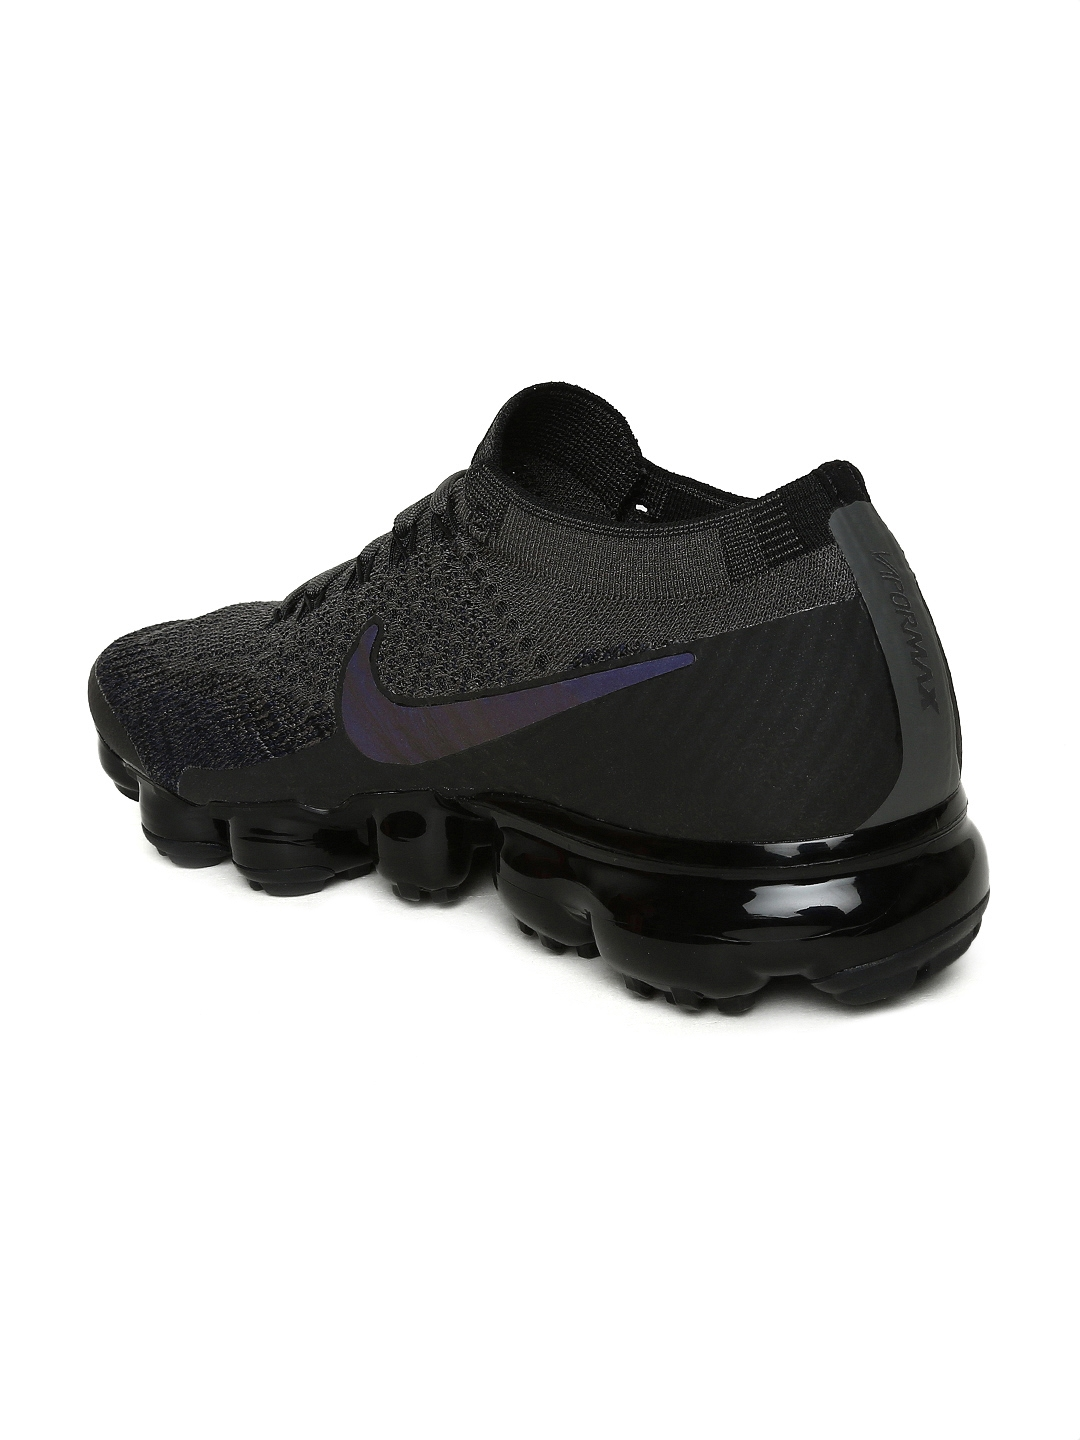 0c462144ae9ba Nike Women Charcoal Grey Air Vapormax Flyknit Running Shoes. Rs. 19995Additional  ...